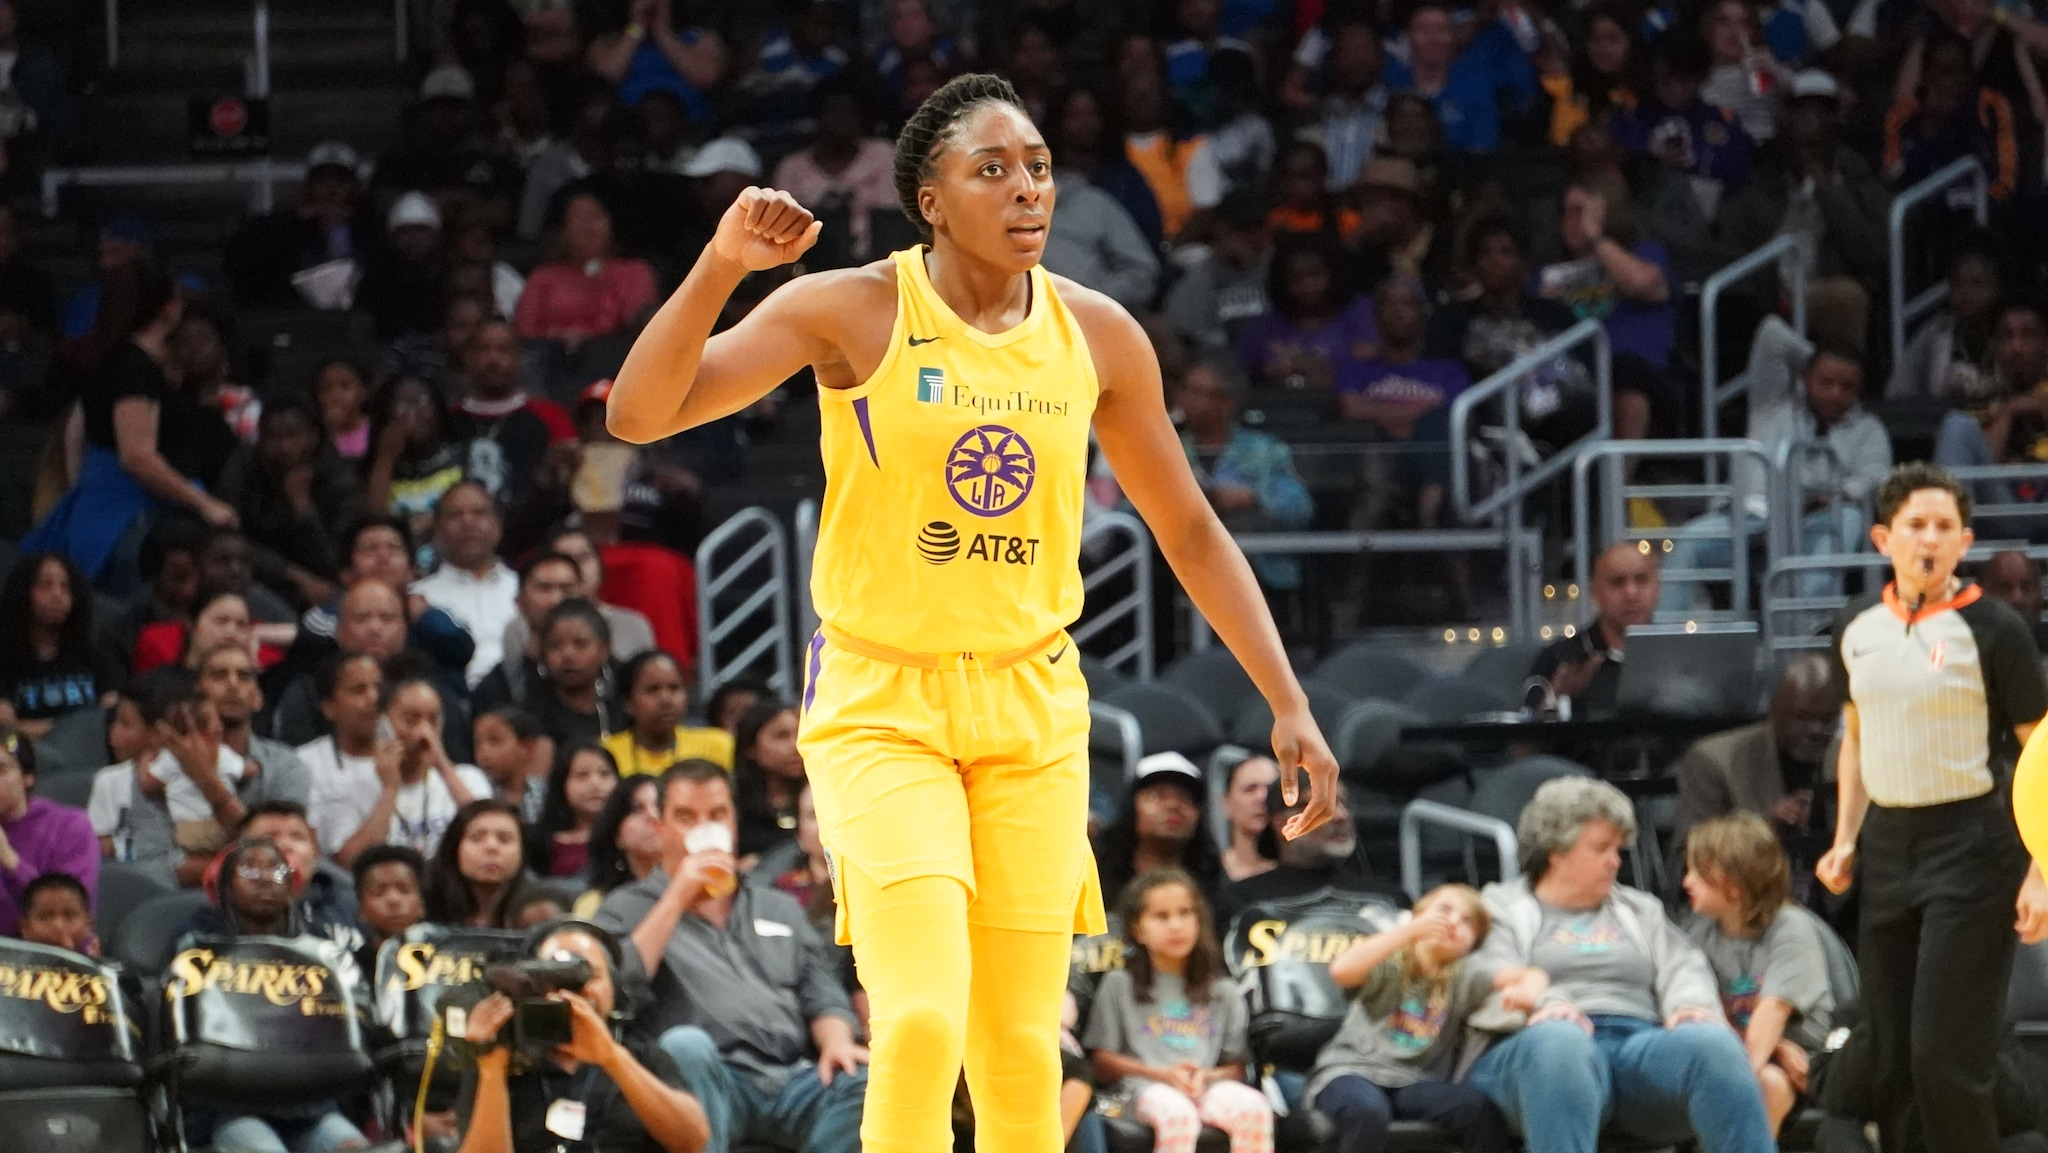 A double dose of Ogwumike helps Los Angeles surge past Connecticut in home opener, 77-70